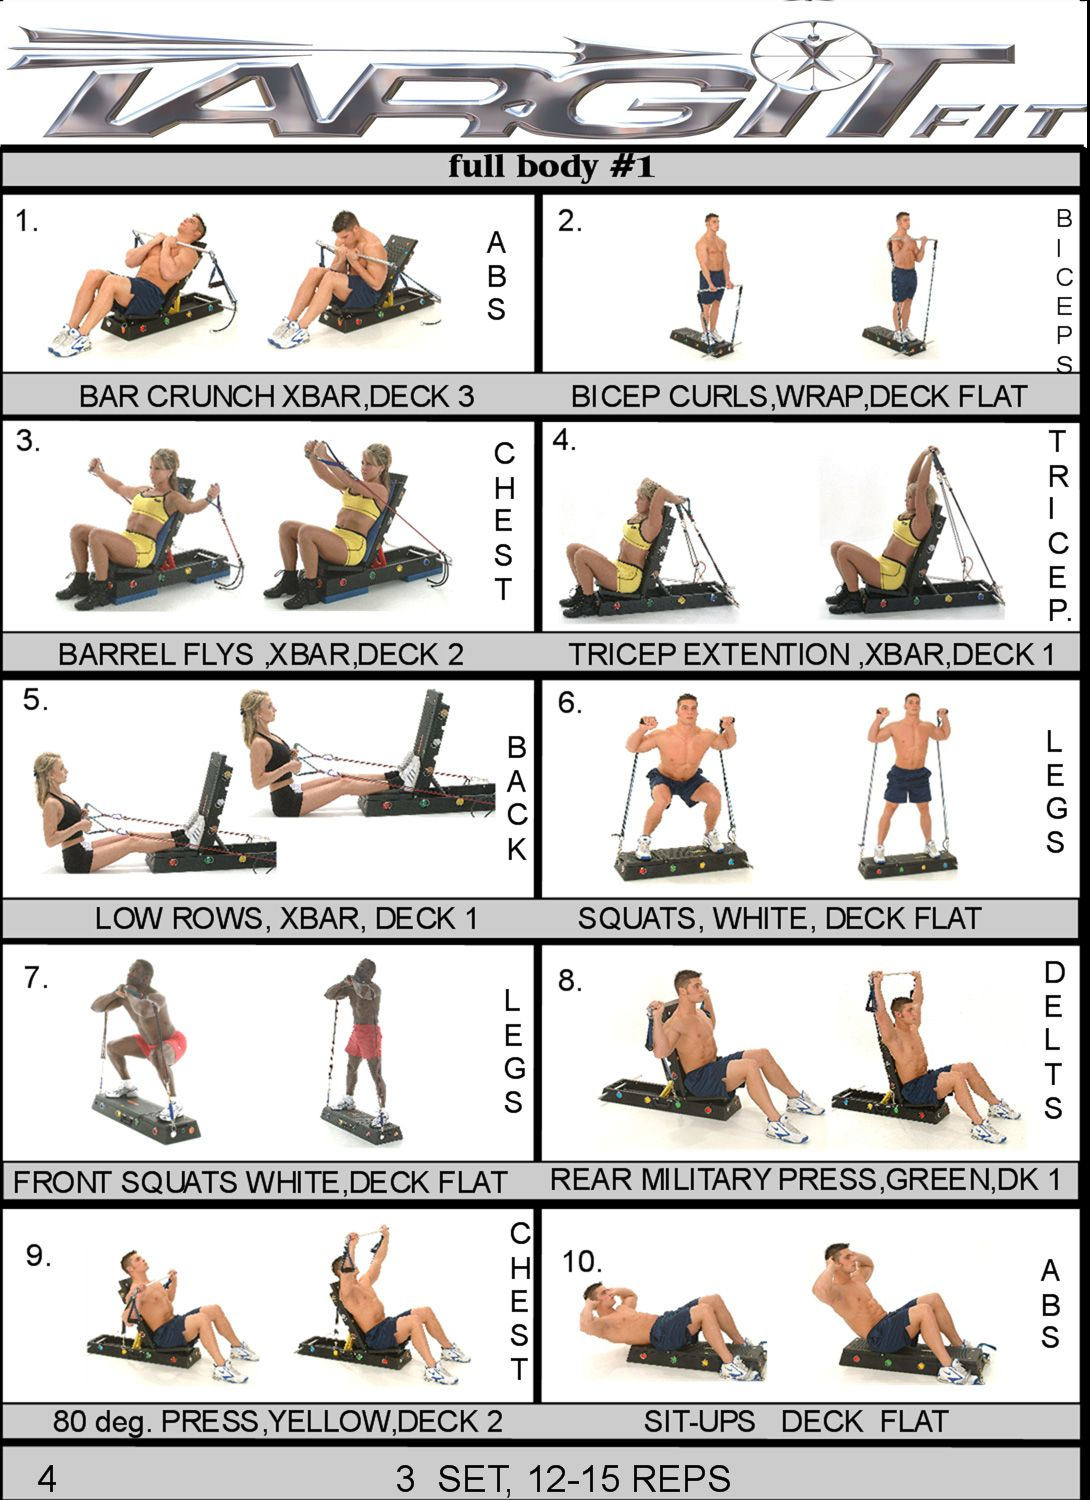 Gym Workout Chart For Chest For Men Full Body 1 Workout Chart Health Spa 43 Fitness Club